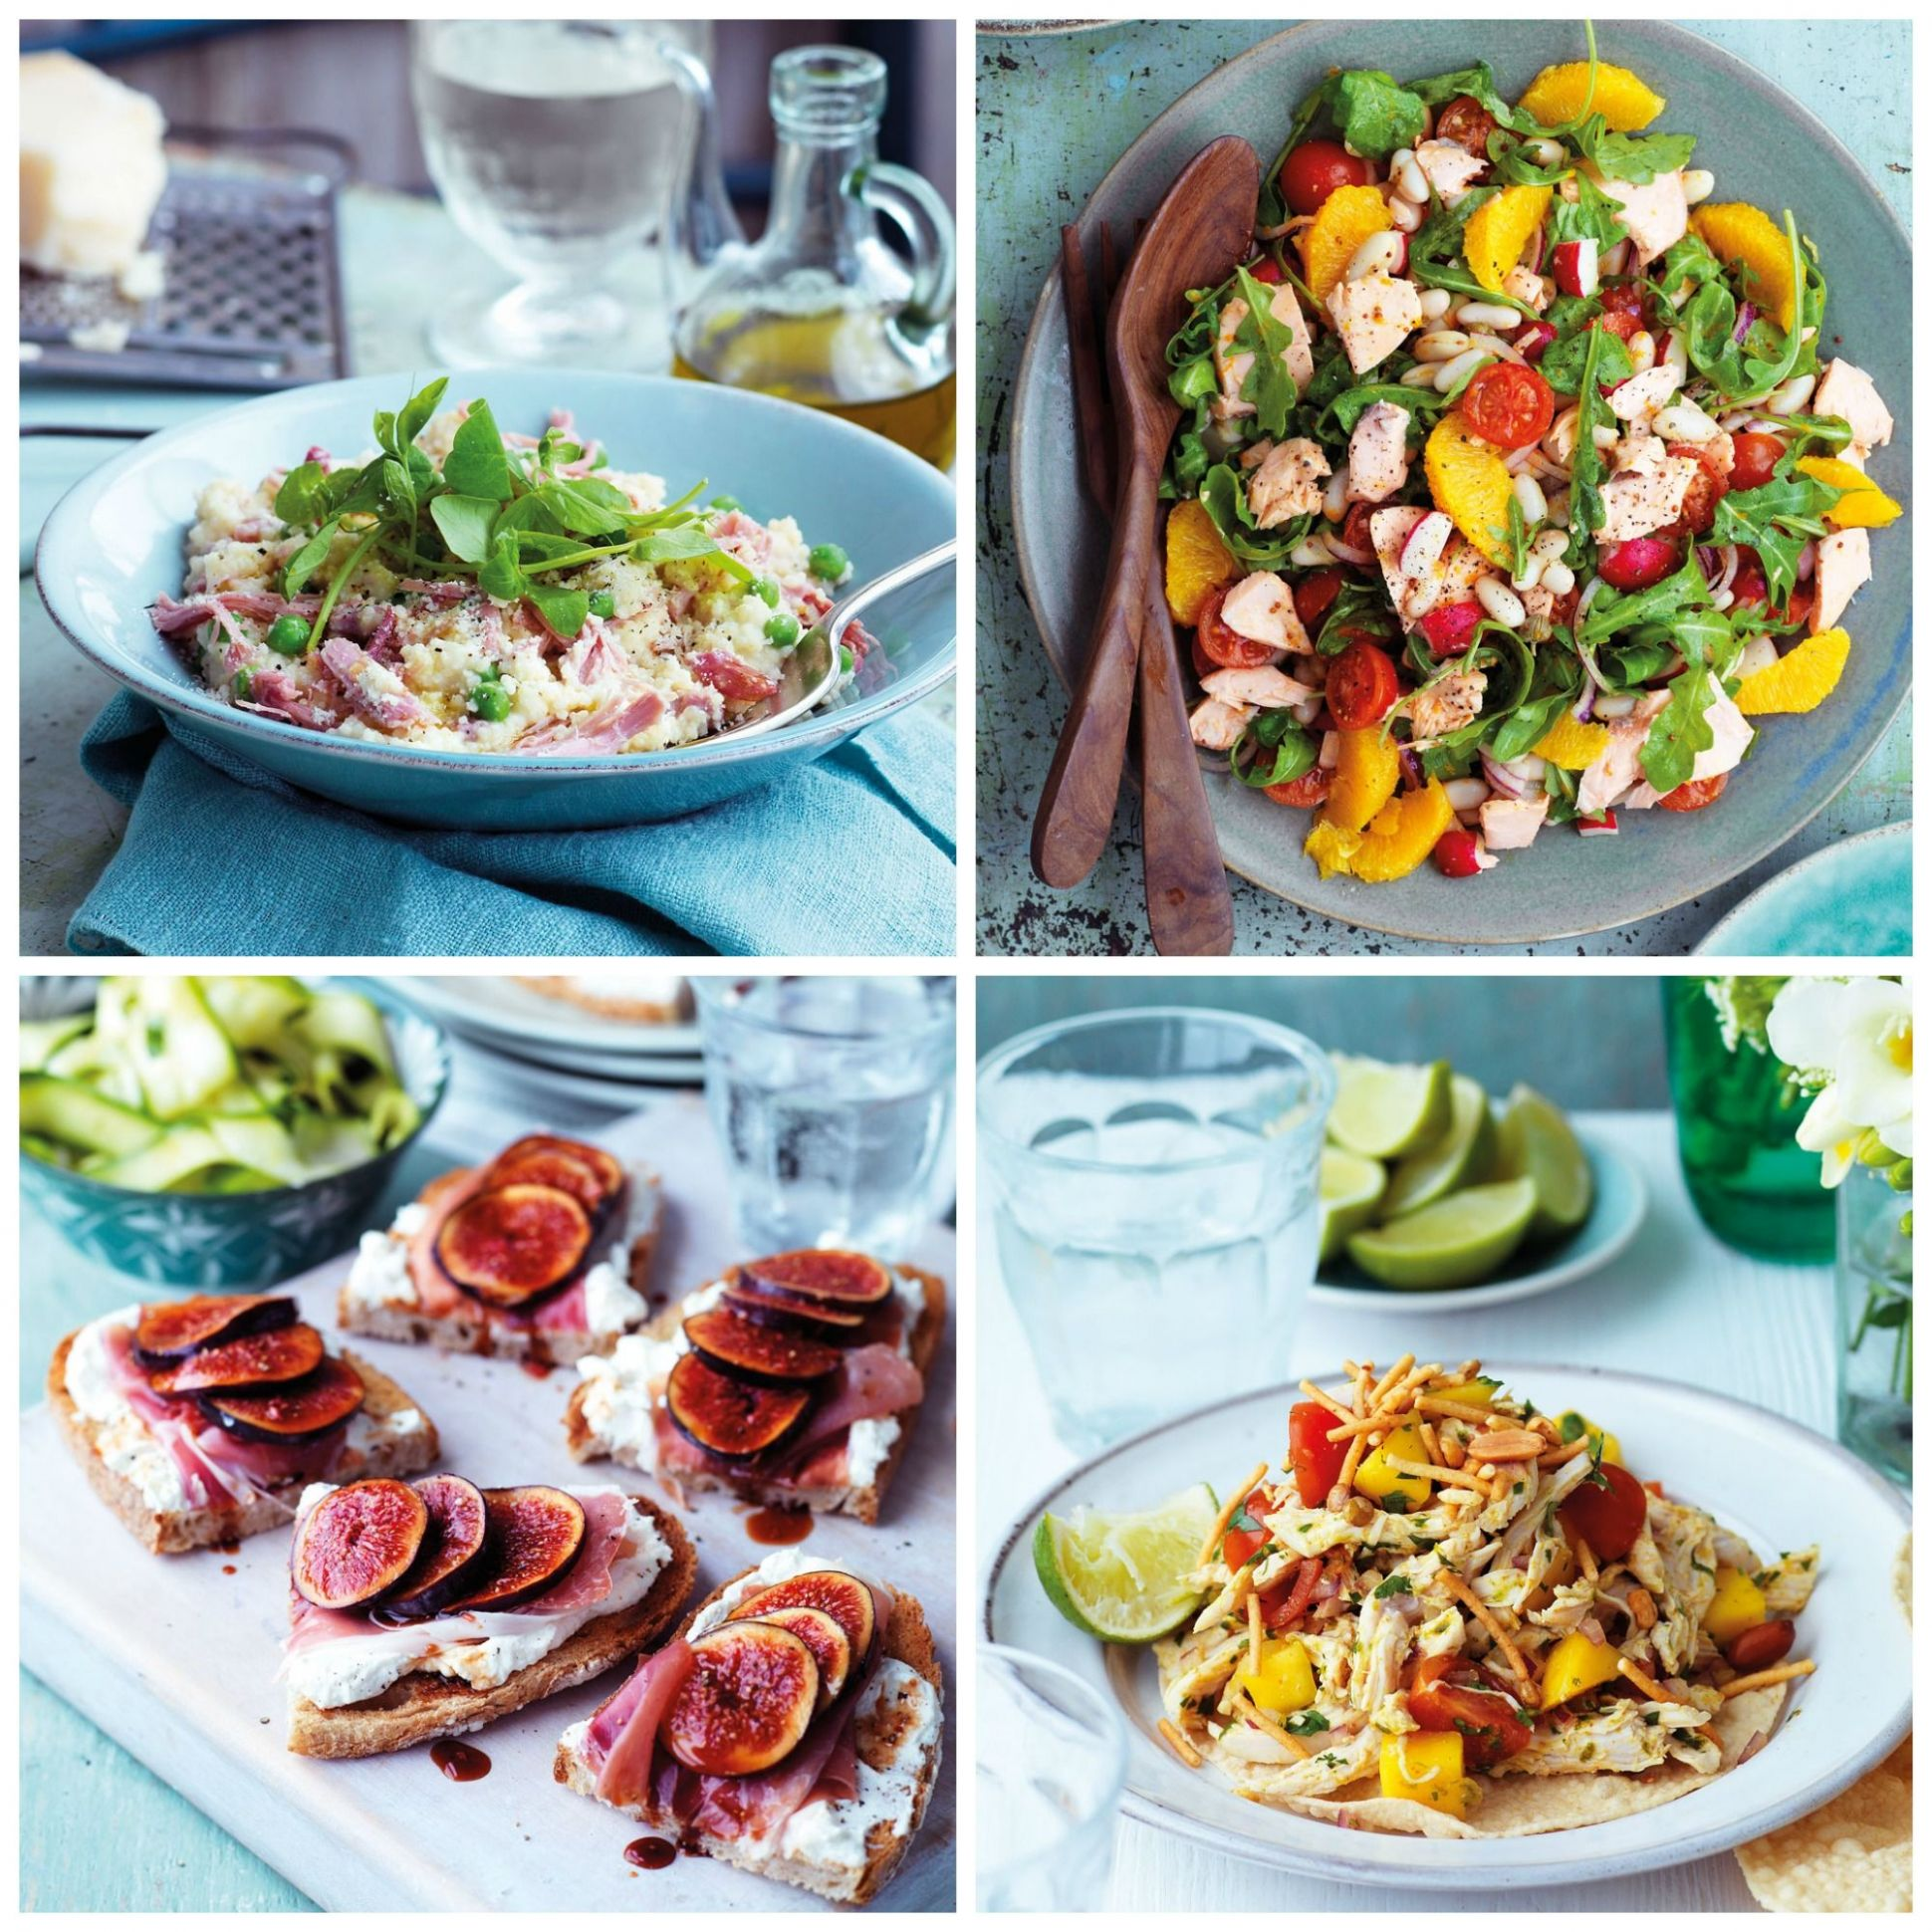 Easy no-cook meals - tasty Summer recipes that don't require cooking